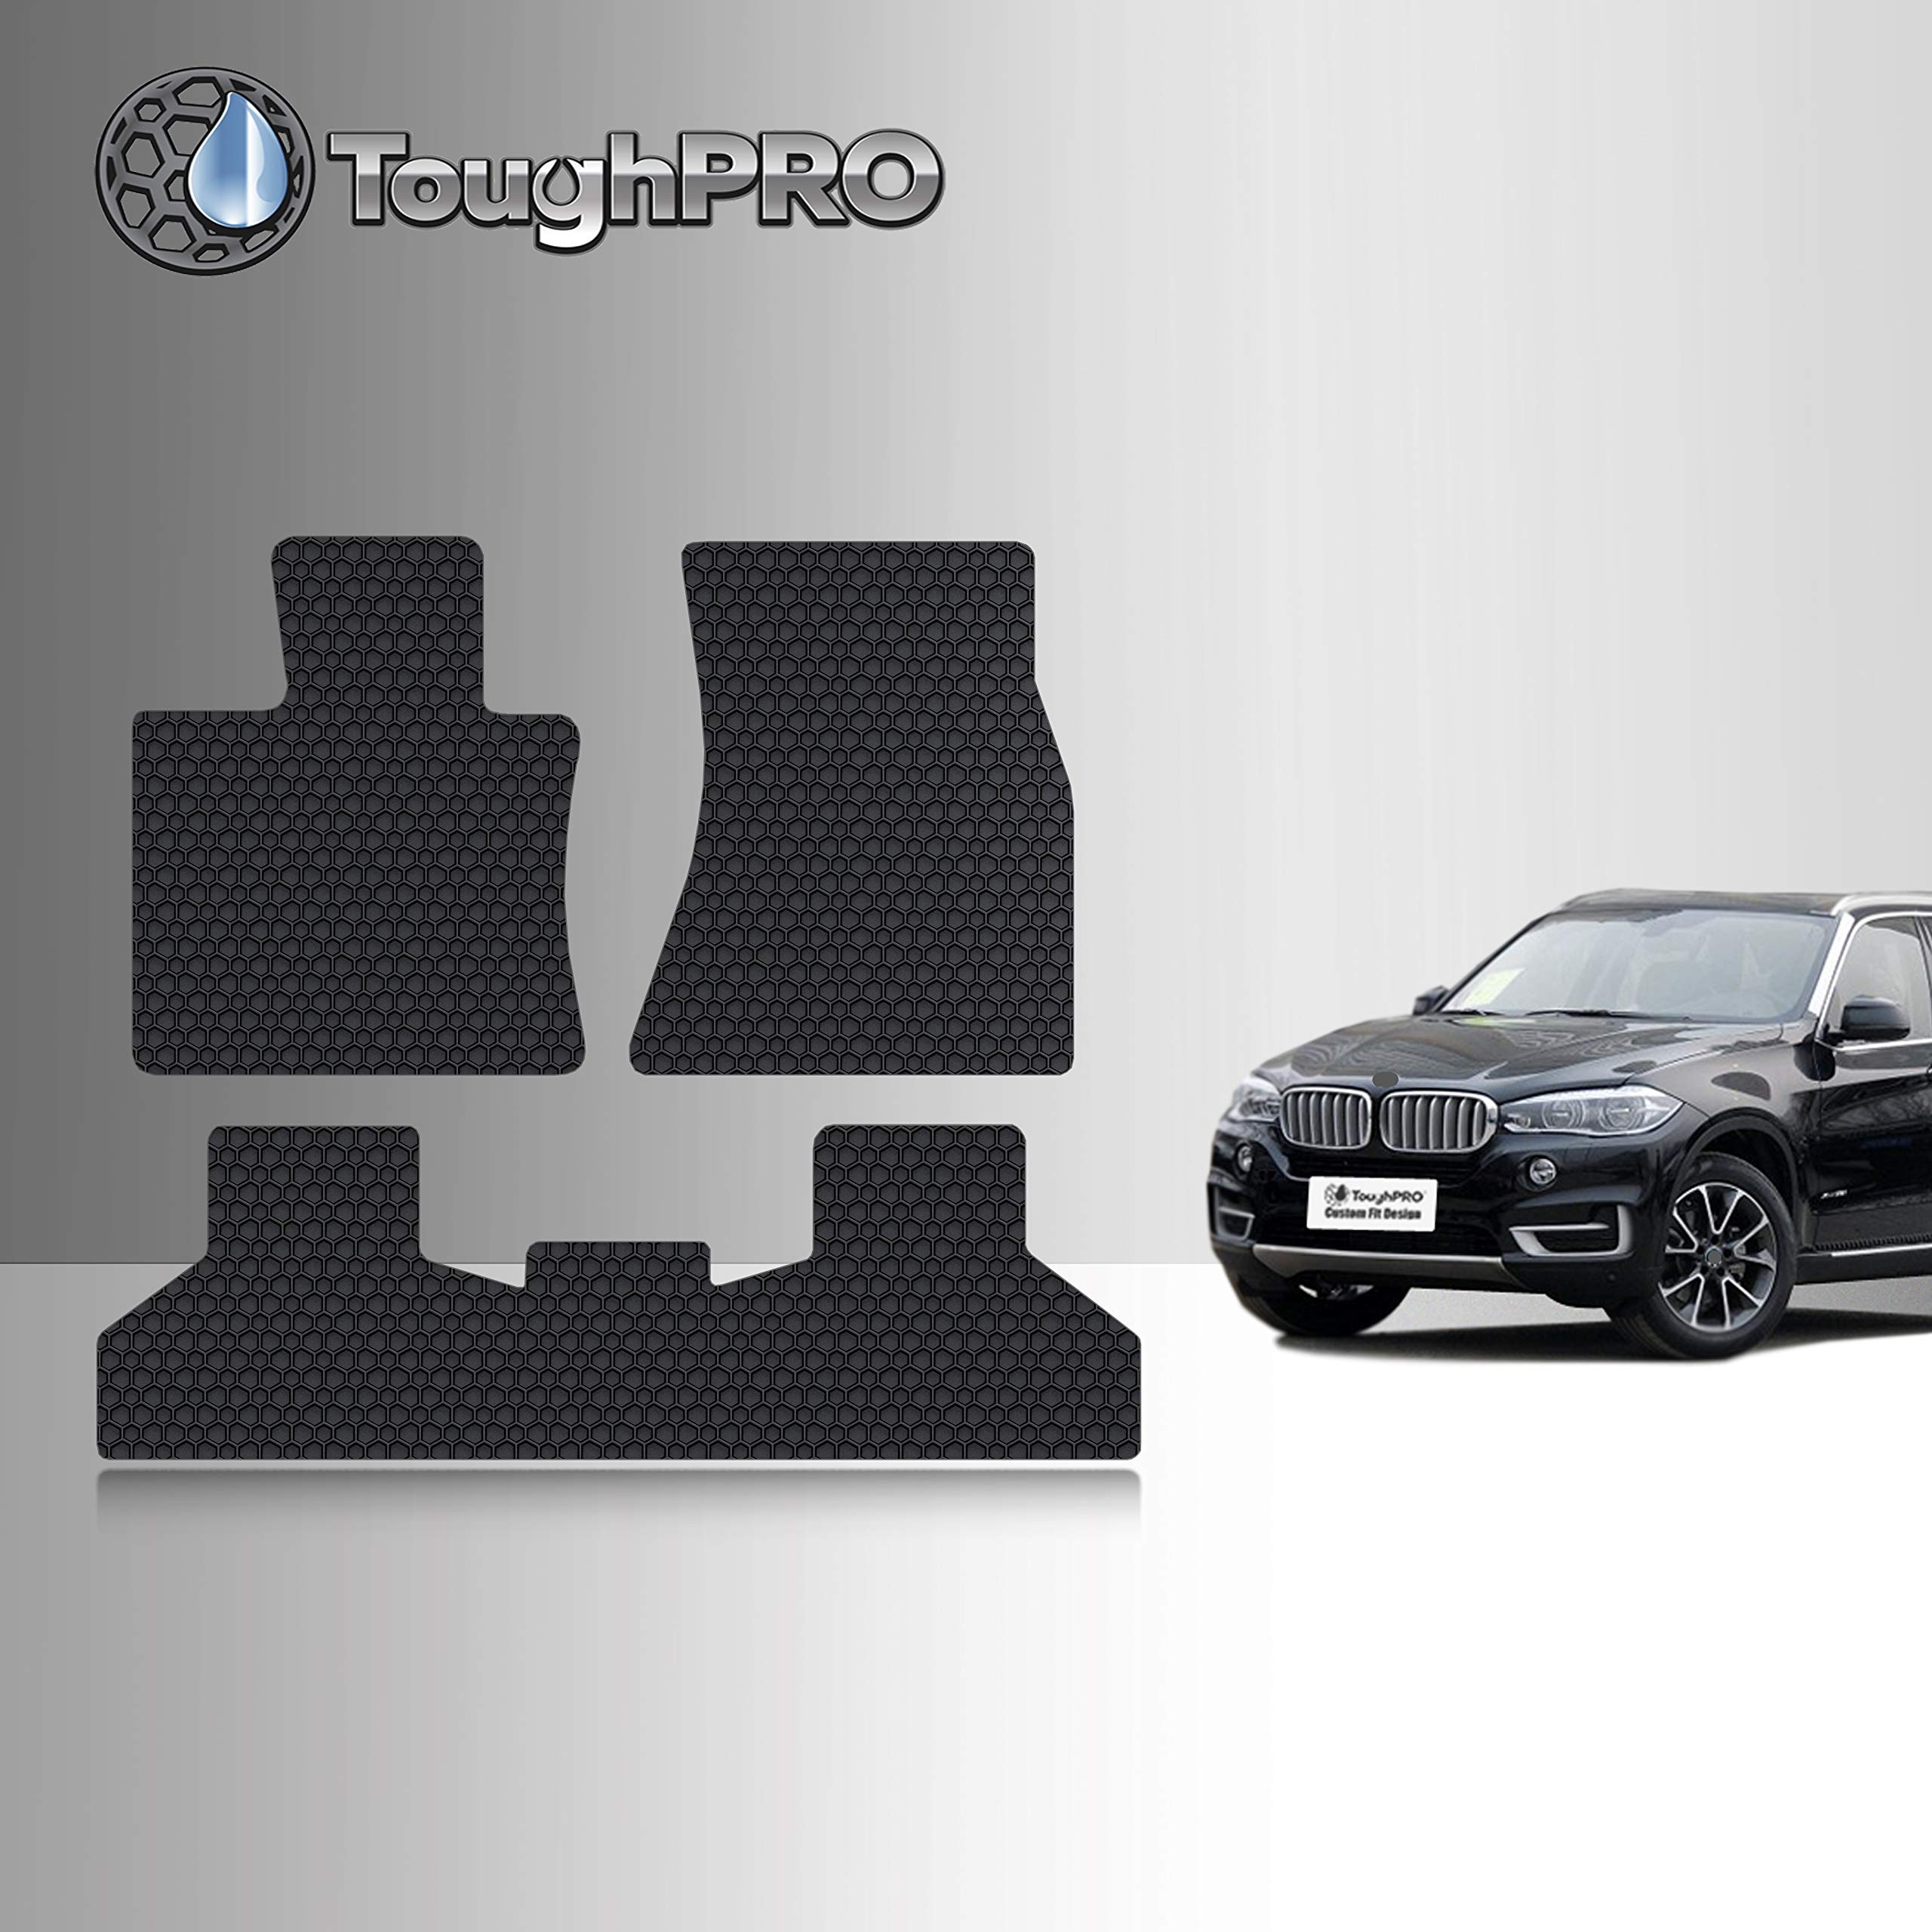 TOUGHPRO Floor Mat Accessories Set Compatible with BMW X5 - All Weather - Heavy Duty - (Made in USA) - Black Rubber - 2014, 2015, 2016, 2017, 2018 (Front Row + 2nd Row)